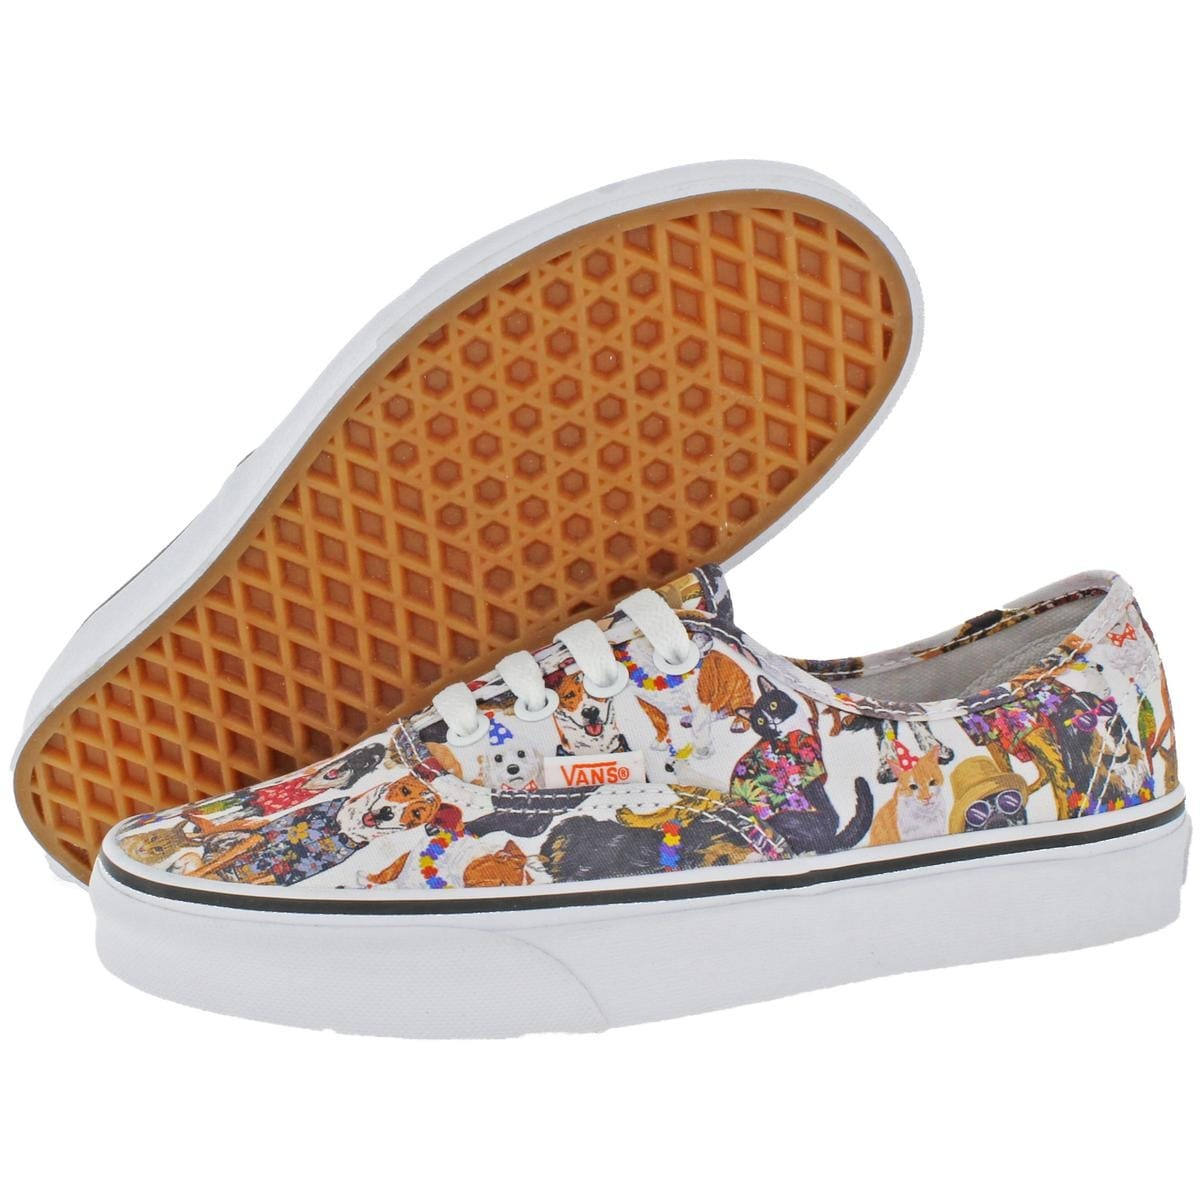 43689a2b8a1e10 Shop Vans Womens Authentic ASPCA Skate Shoes Low Top Trainer - Free  Shipping On Orders Over  45 - Overstock - 22732728